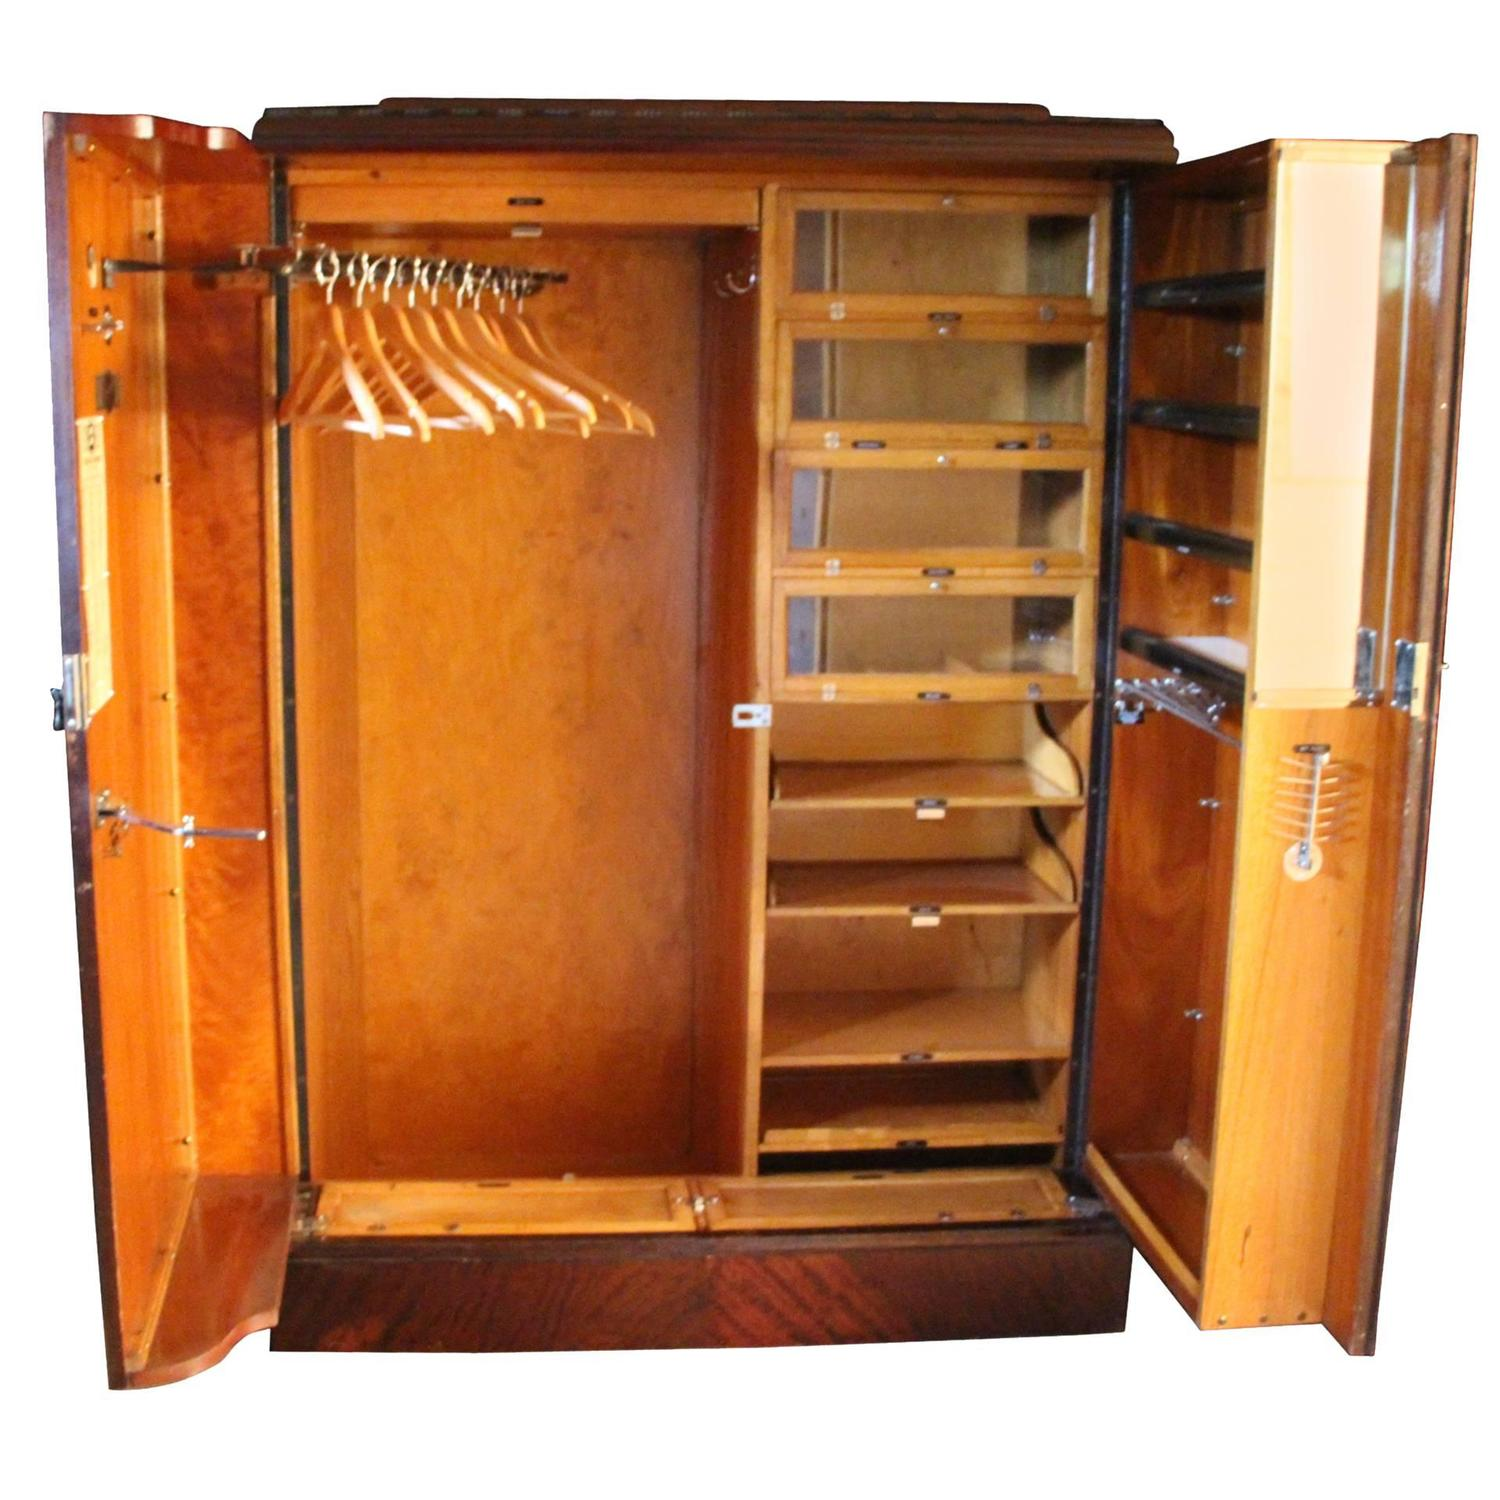 Beautiful 1930s Mahogany All Fitted Closet, Compactom Steamer Trunk At 1stdibs